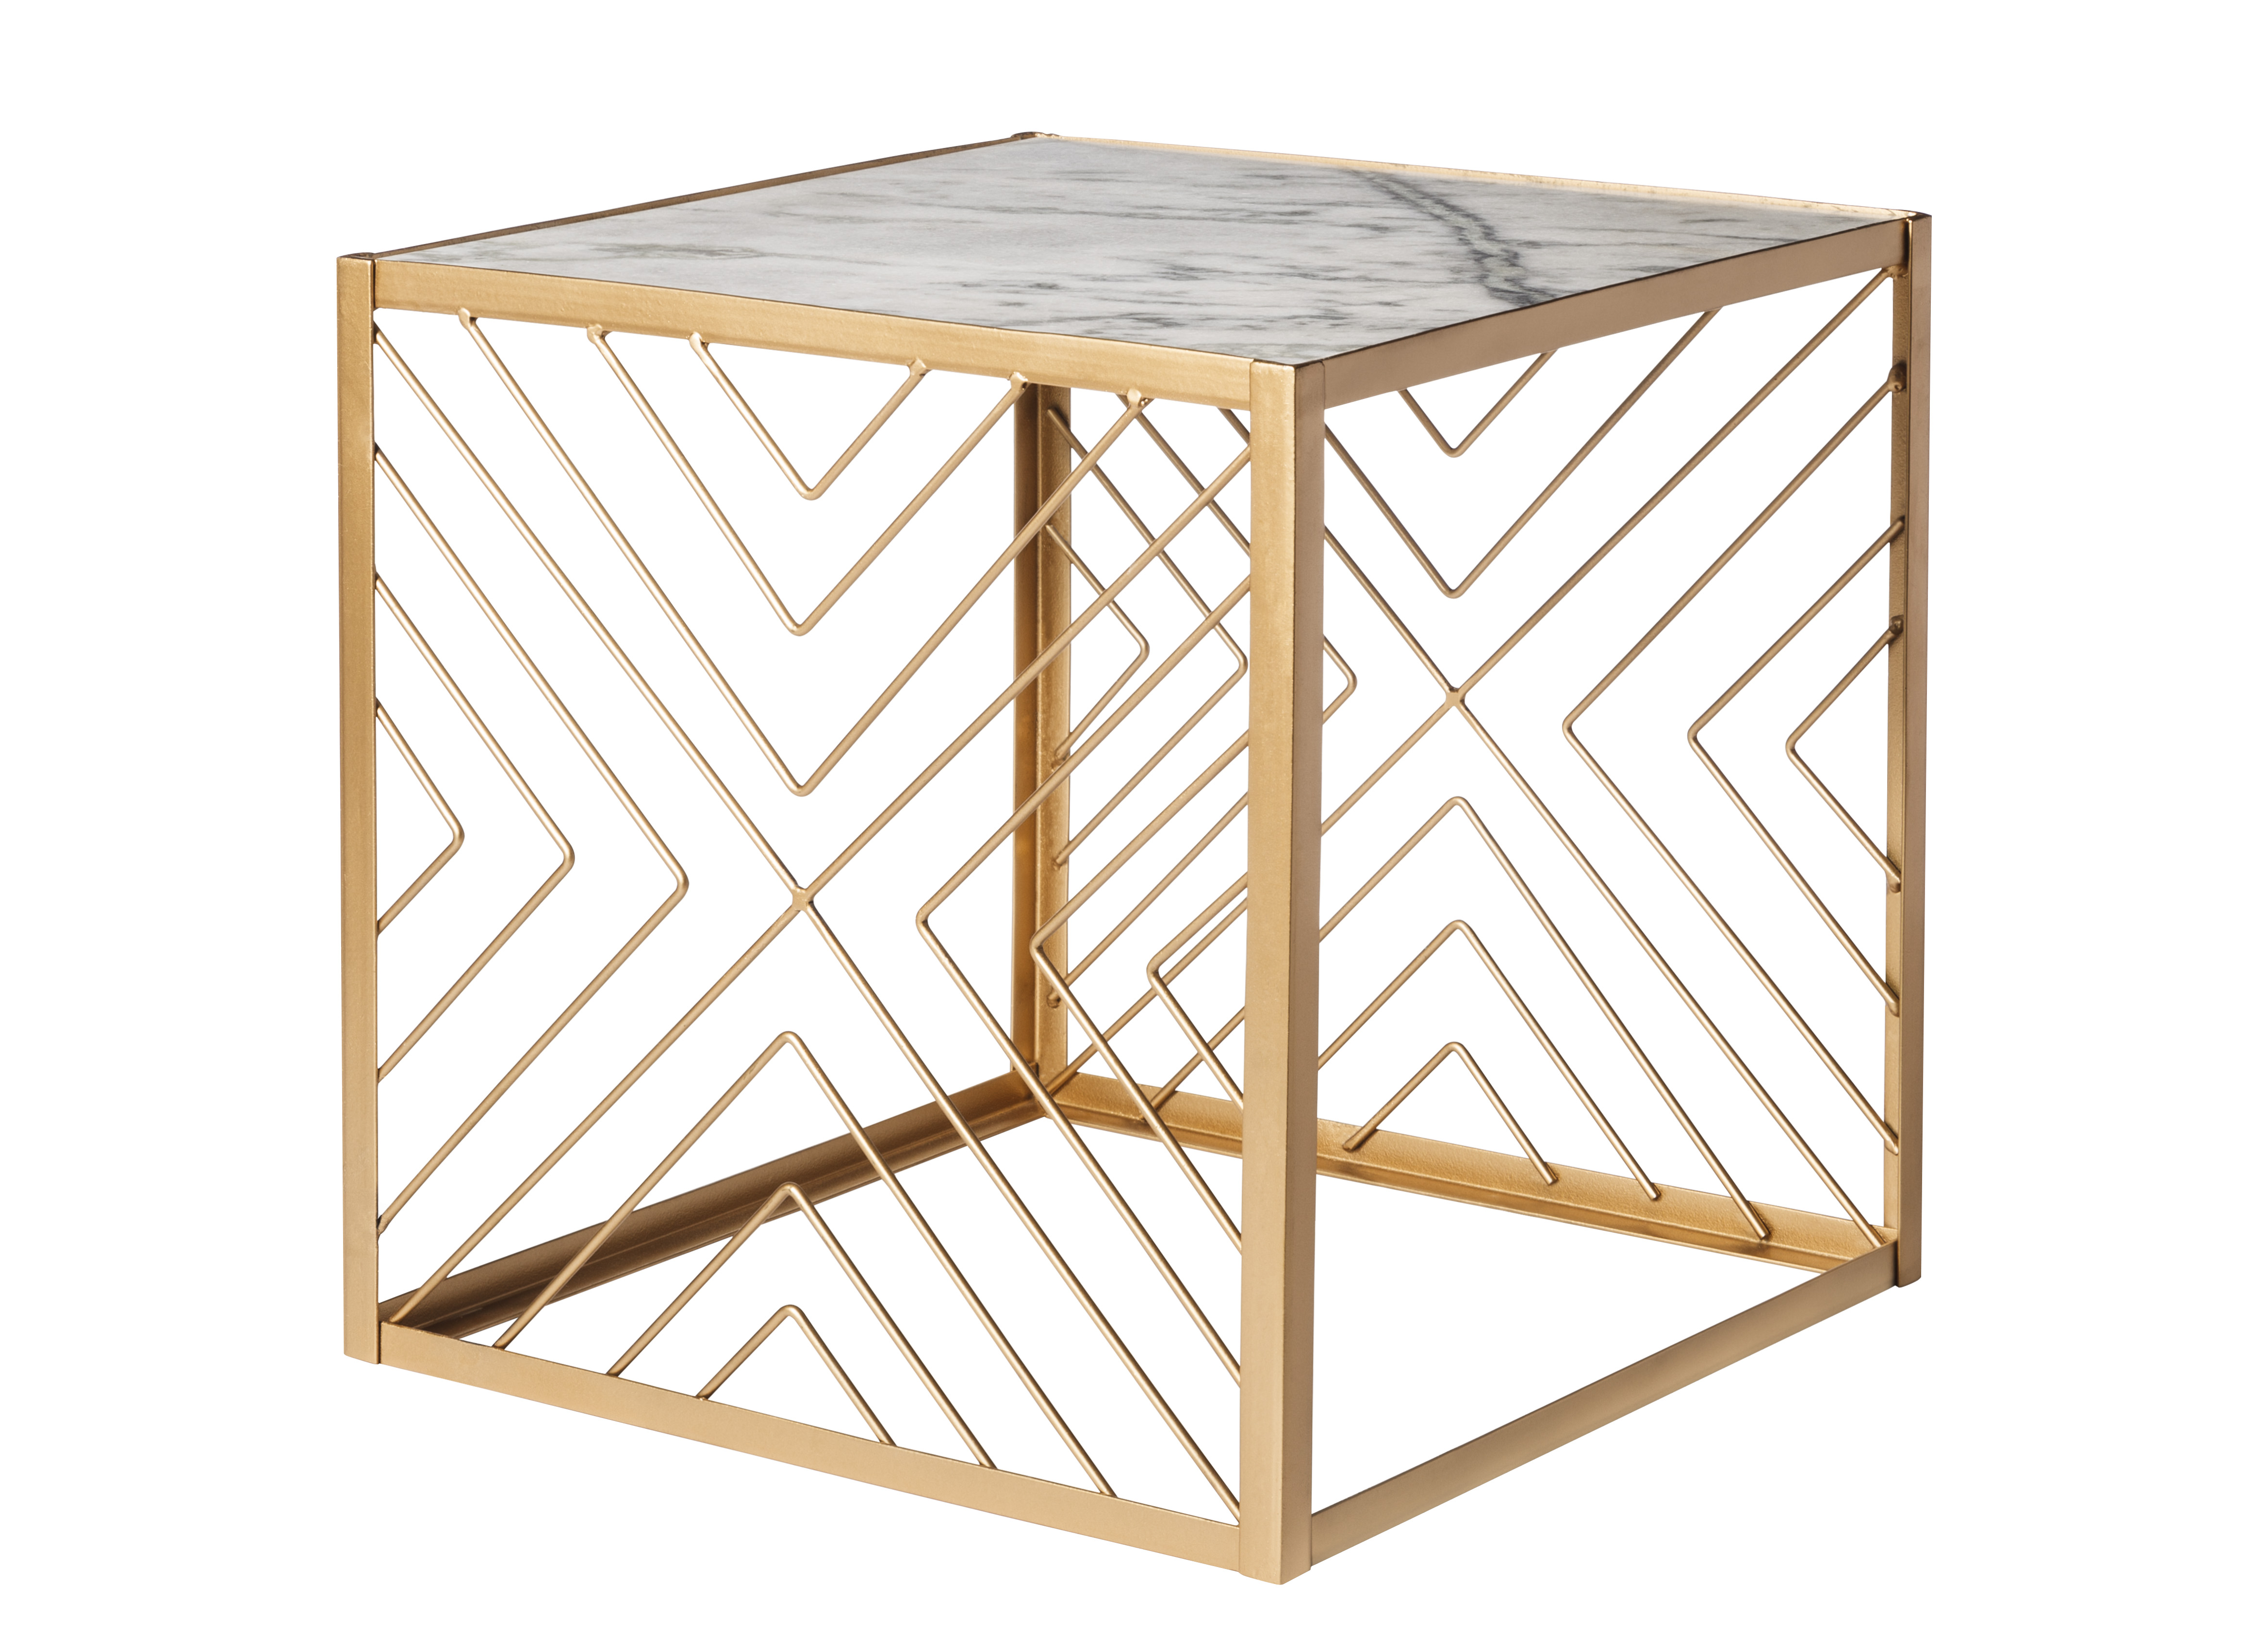 nate berkus target fall holiday look marble accent table round tablecloth small white patio outdoor wicker and chairs garden storage units center design glass top nest tables pier